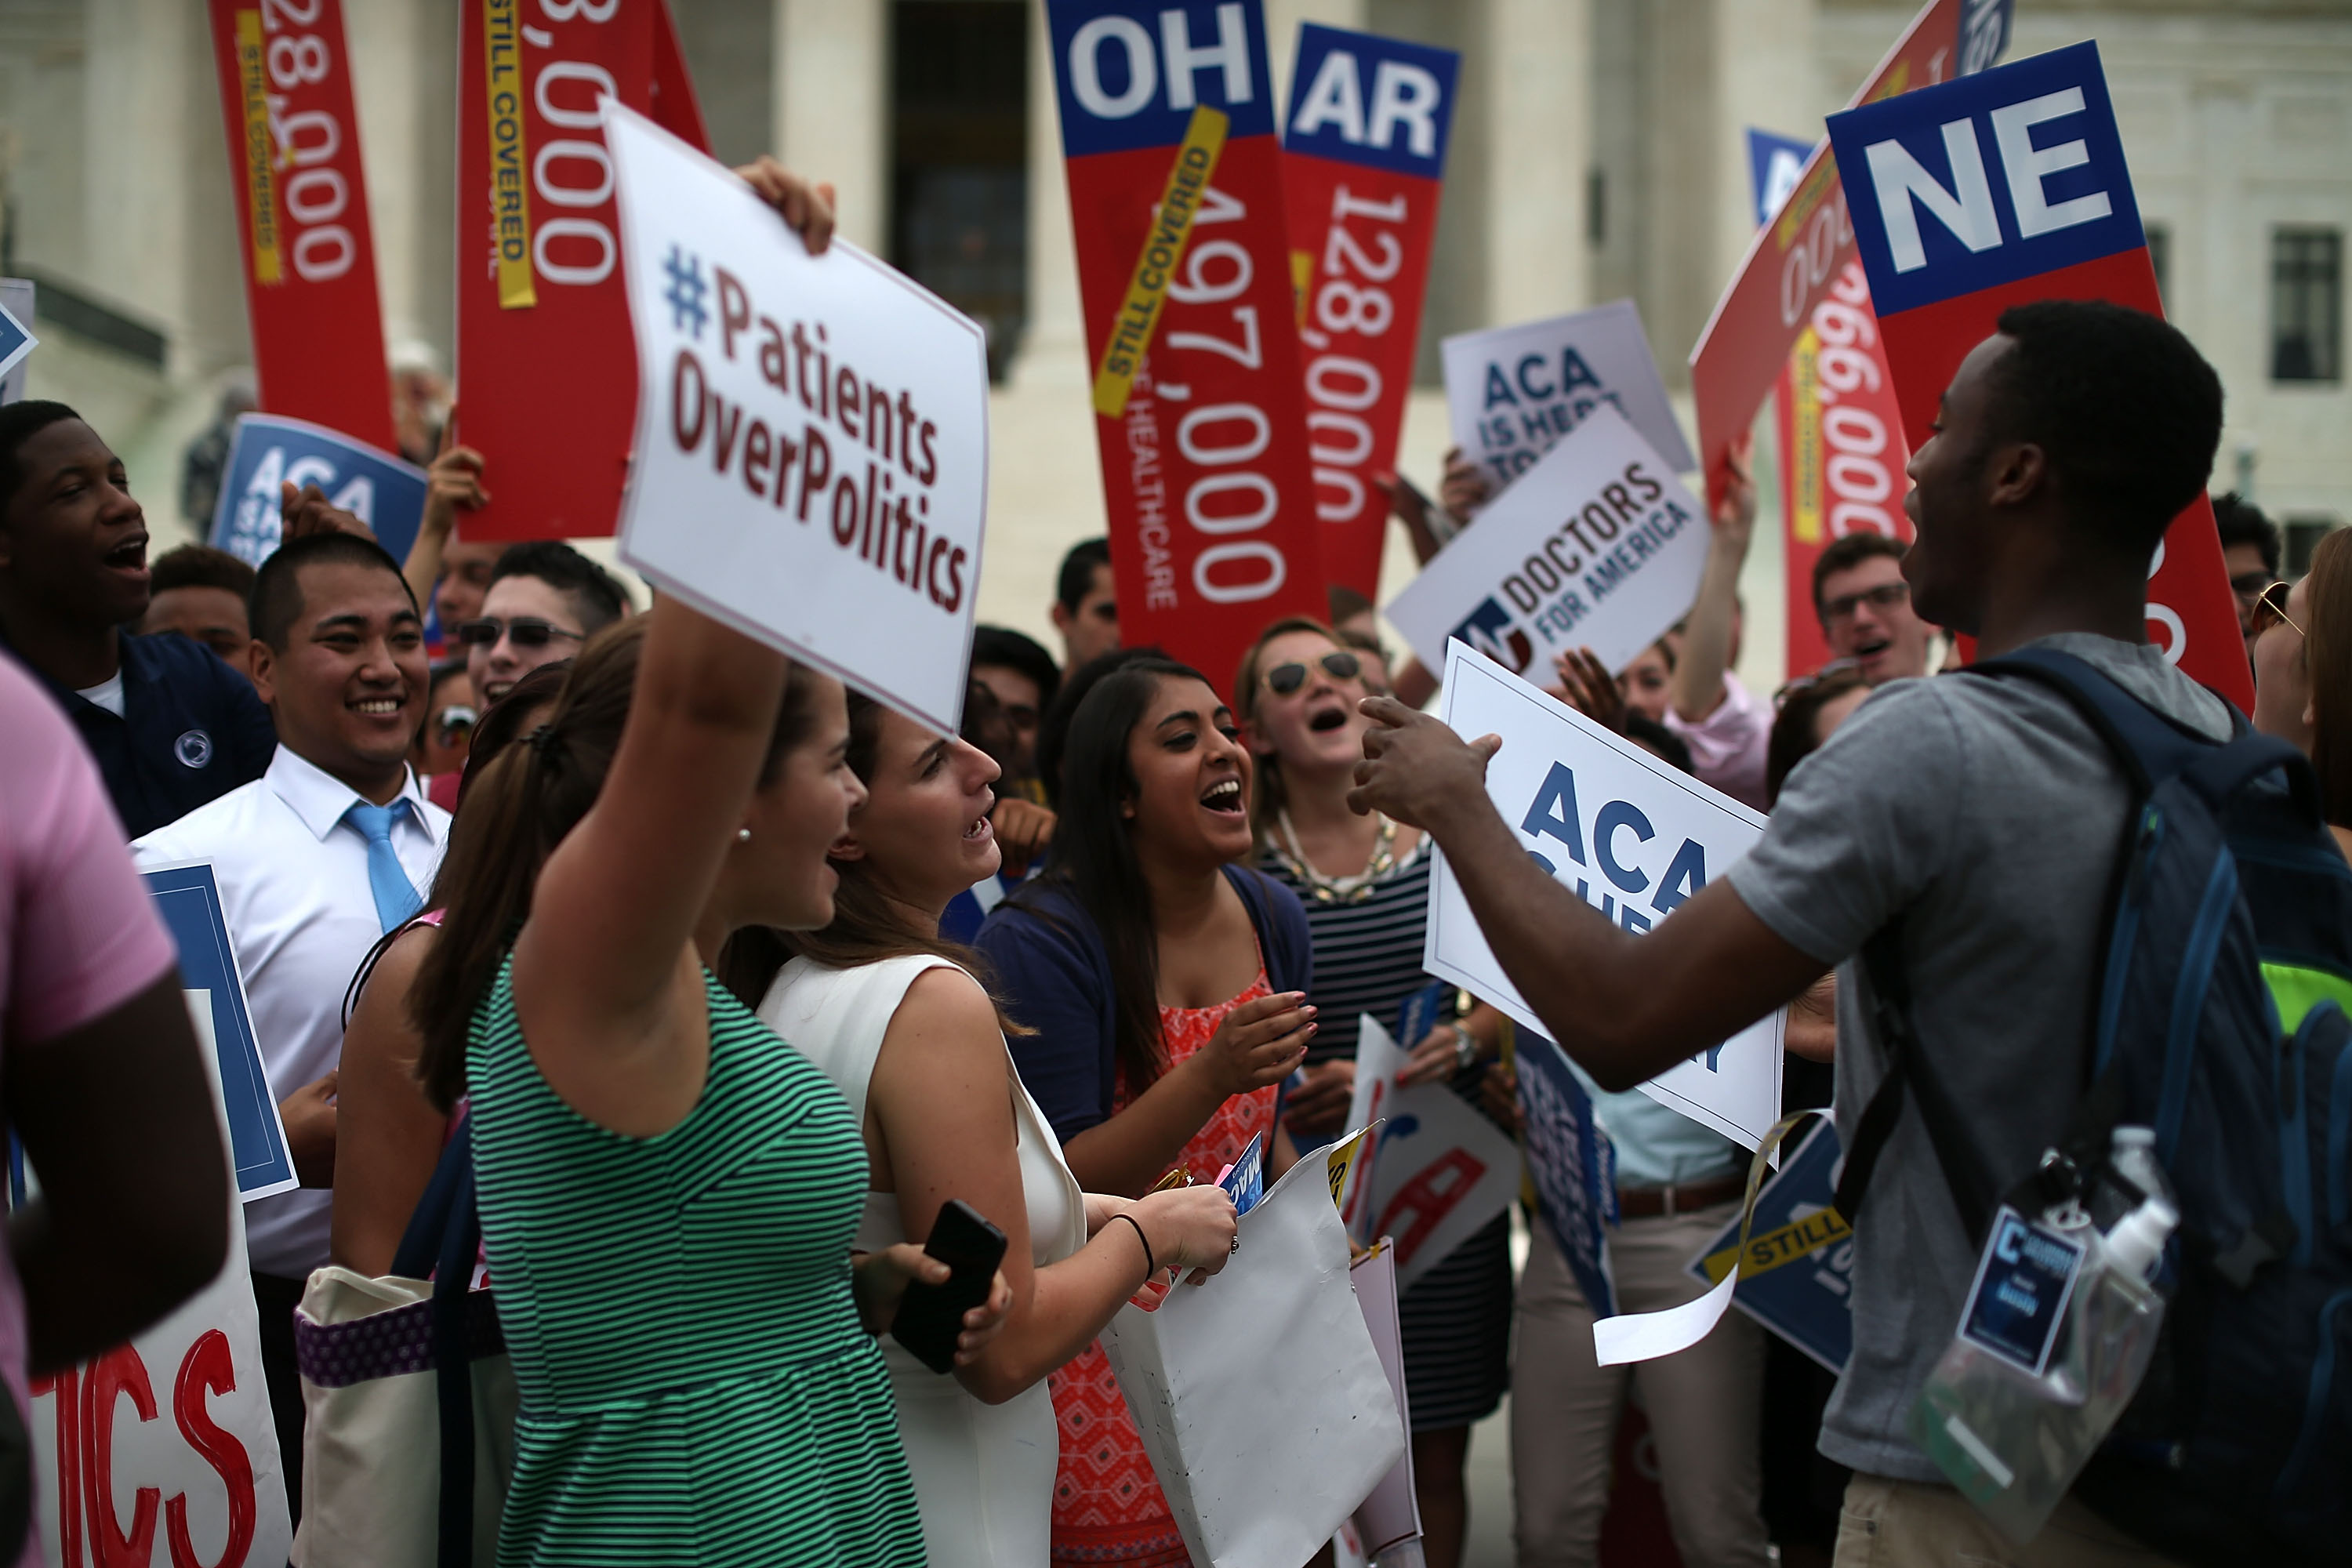 Pro-ACA demonstrators in front of the Supreme Court on June 25, 2015. (Mark Wilson/Getty Images)